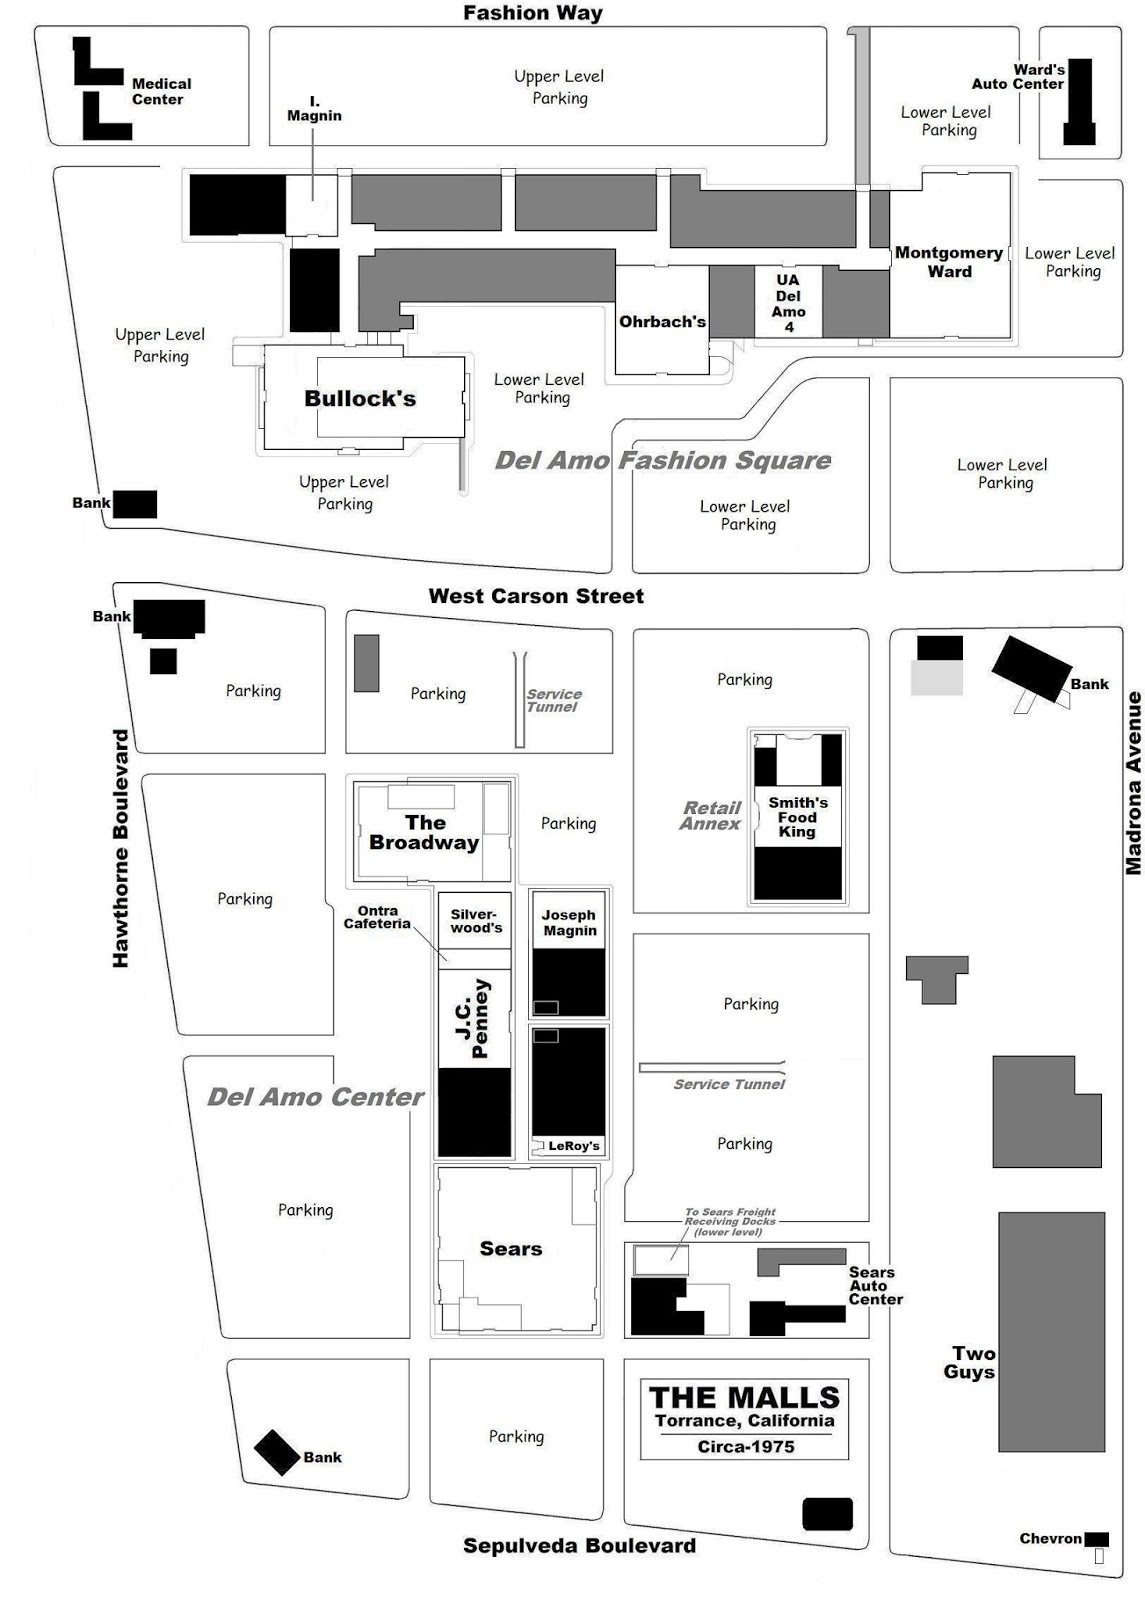 Mall Map Of Fashion Centre Map Brazil Map Of Indianapolis Indiana - Chandler fashion center mall map